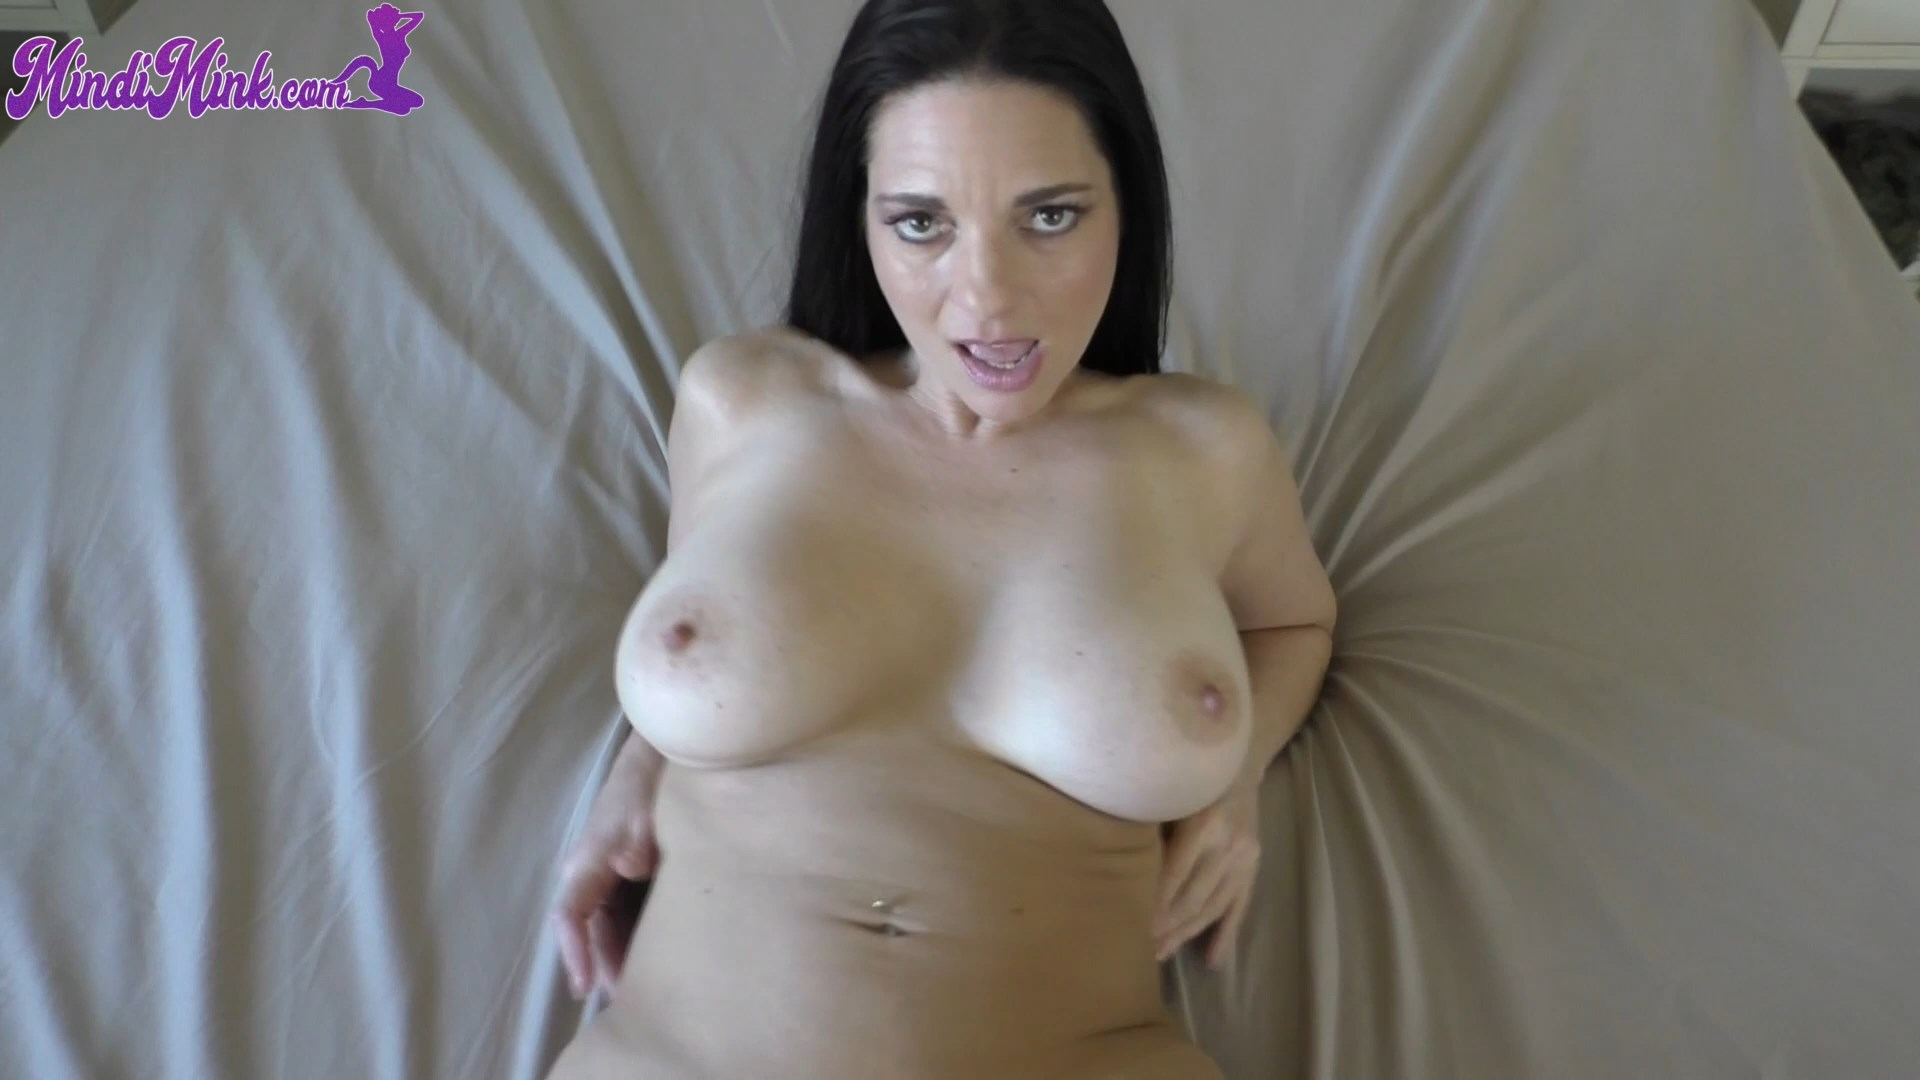 Mindi Mink - Son Seduces Mom